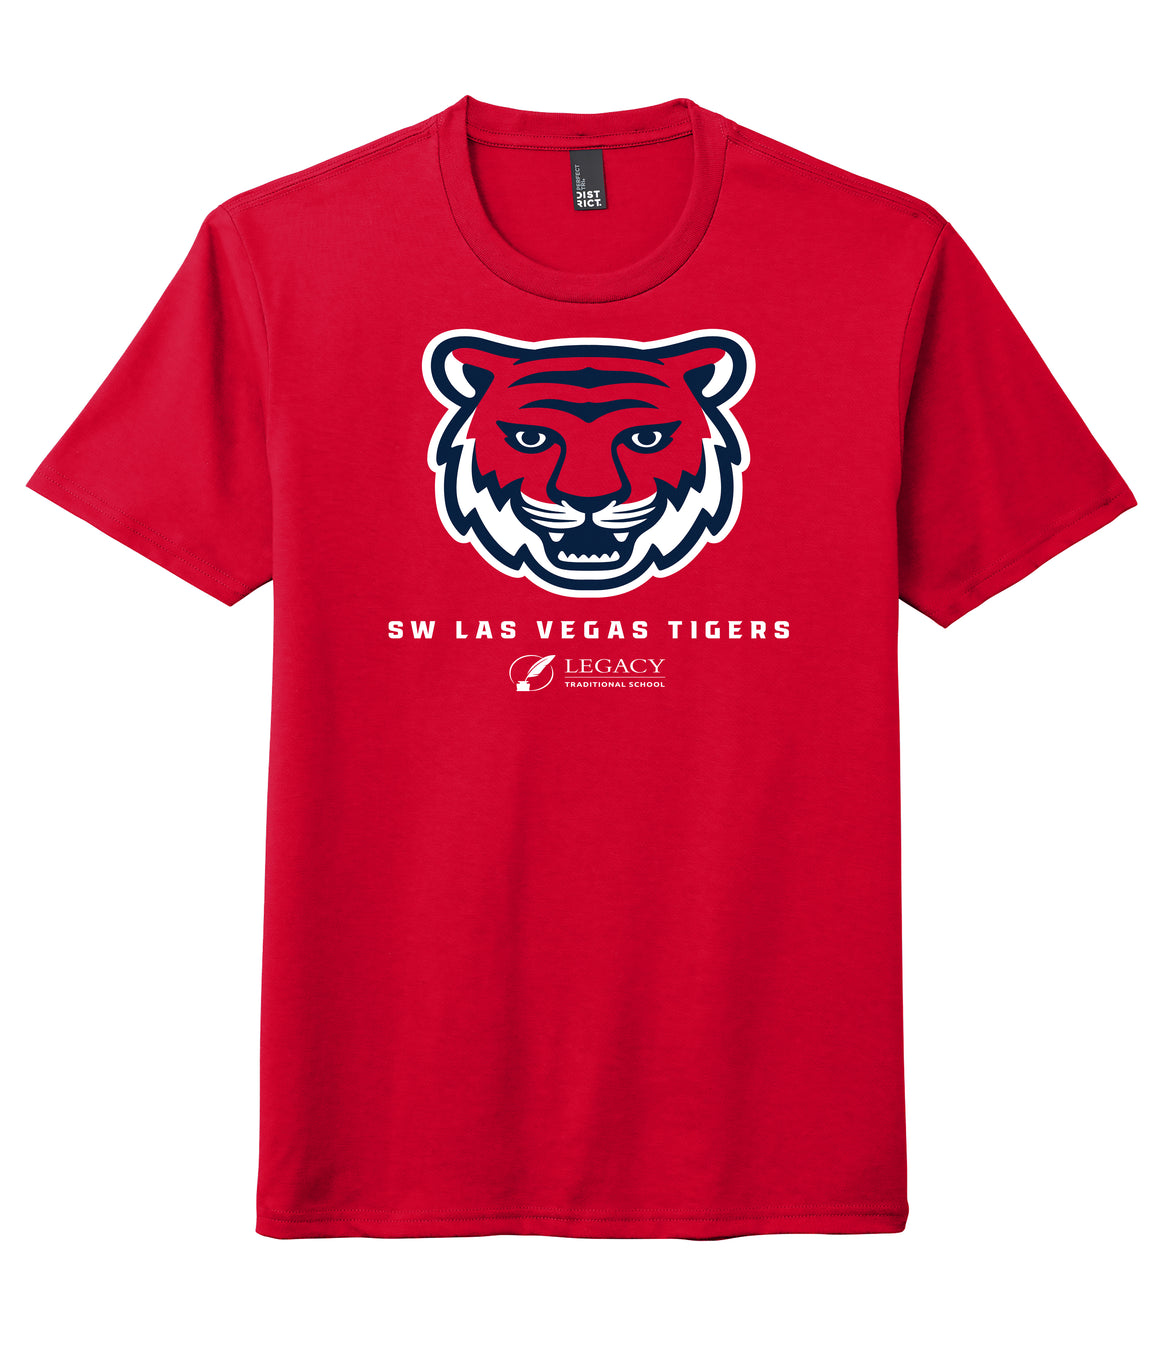 Legacy Traditional School SW Las Vegas - Red Spirit Day Shirt